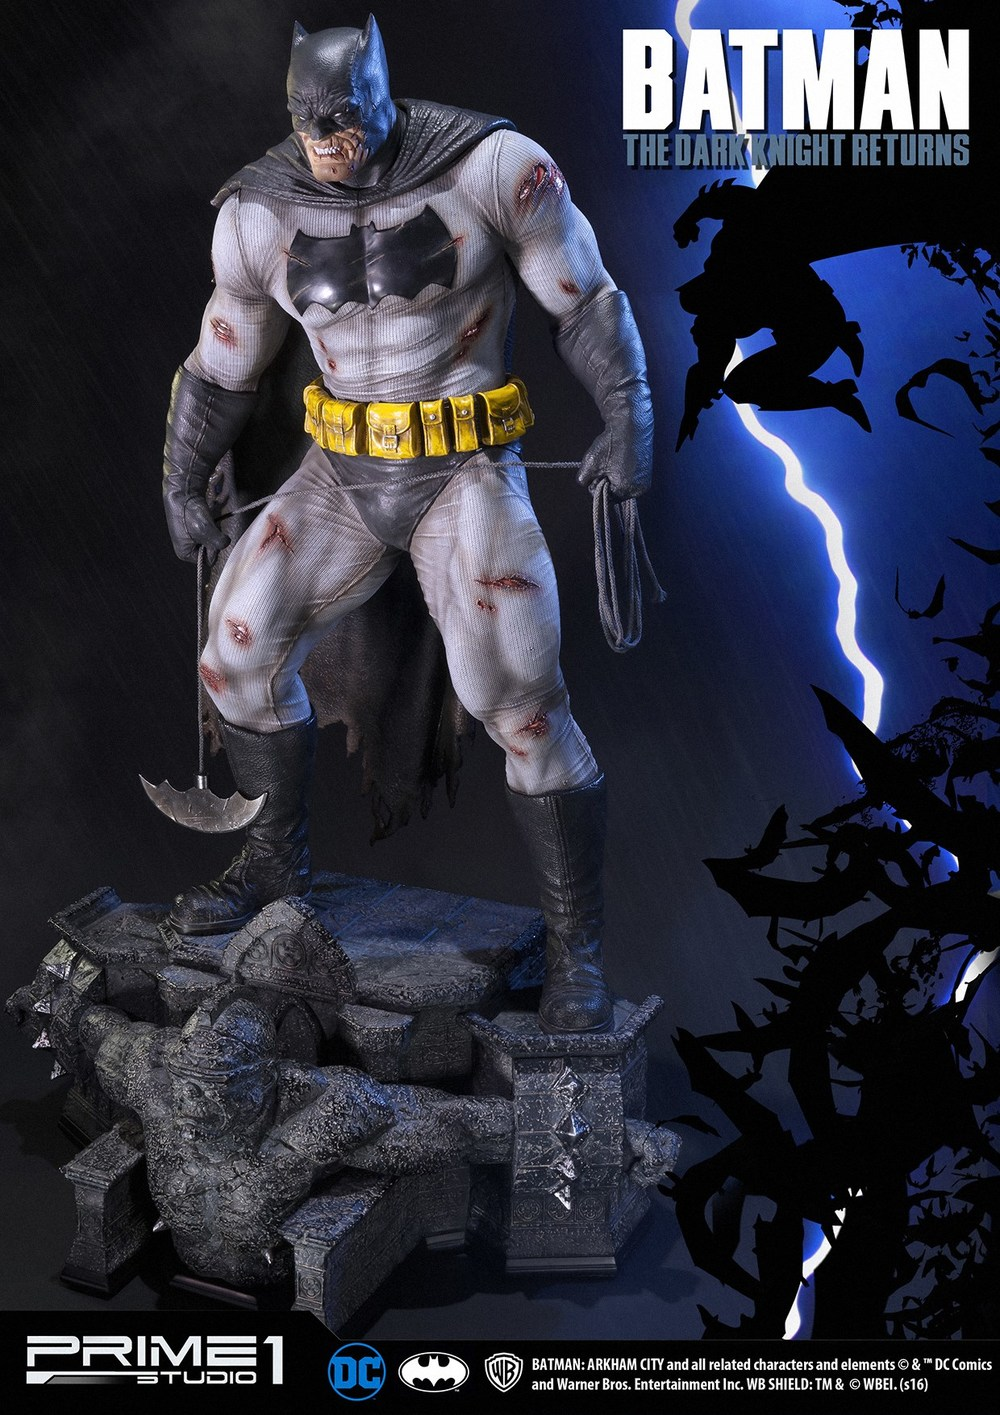 Prime-1-Dark-Knight-Returns-Batman-009.jpg